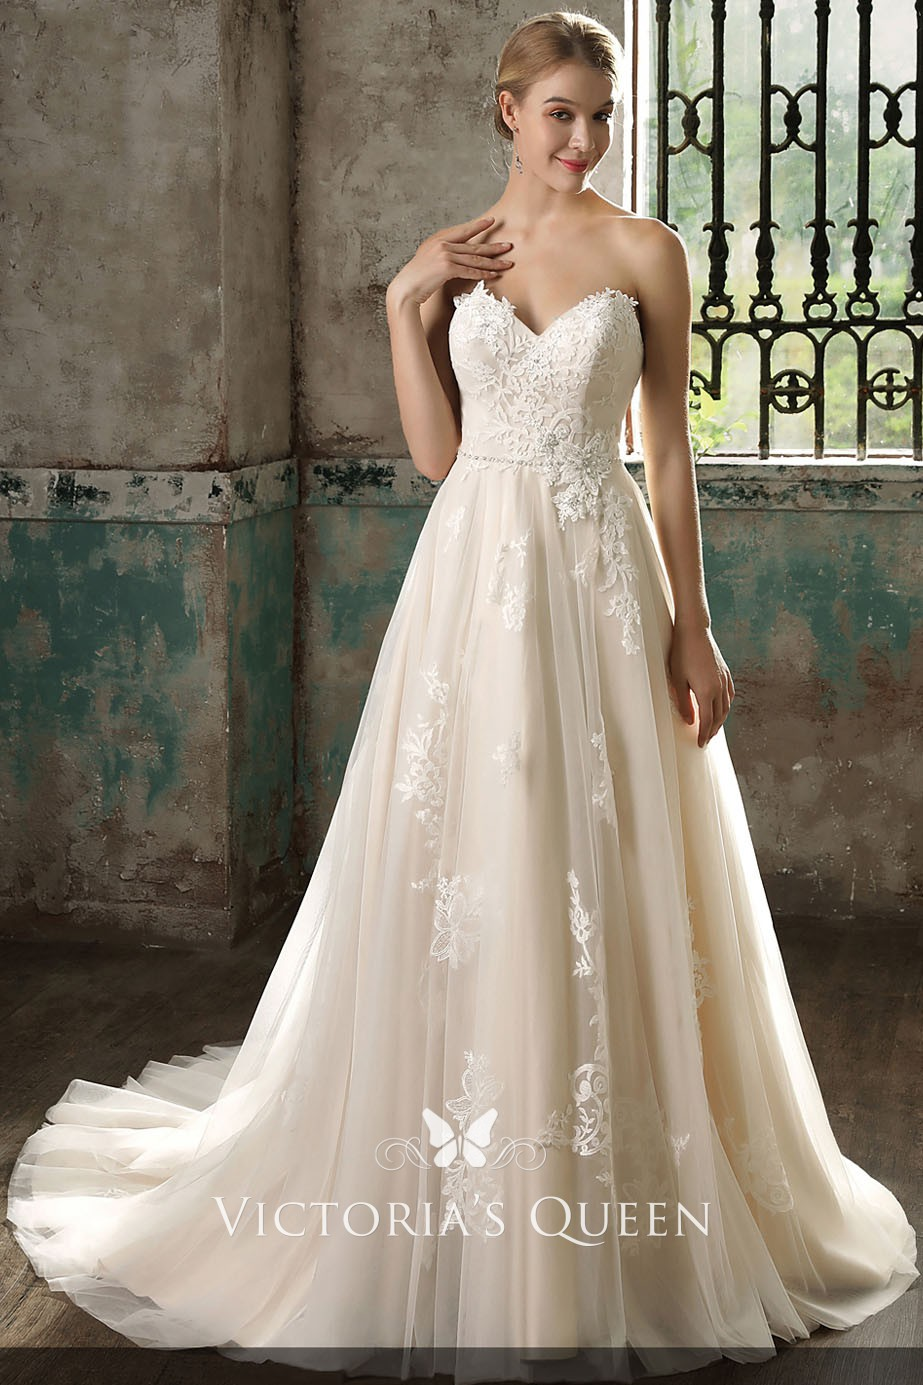 Delicate Lace Appliqued Champagne Tulle Wedding Dress Vq